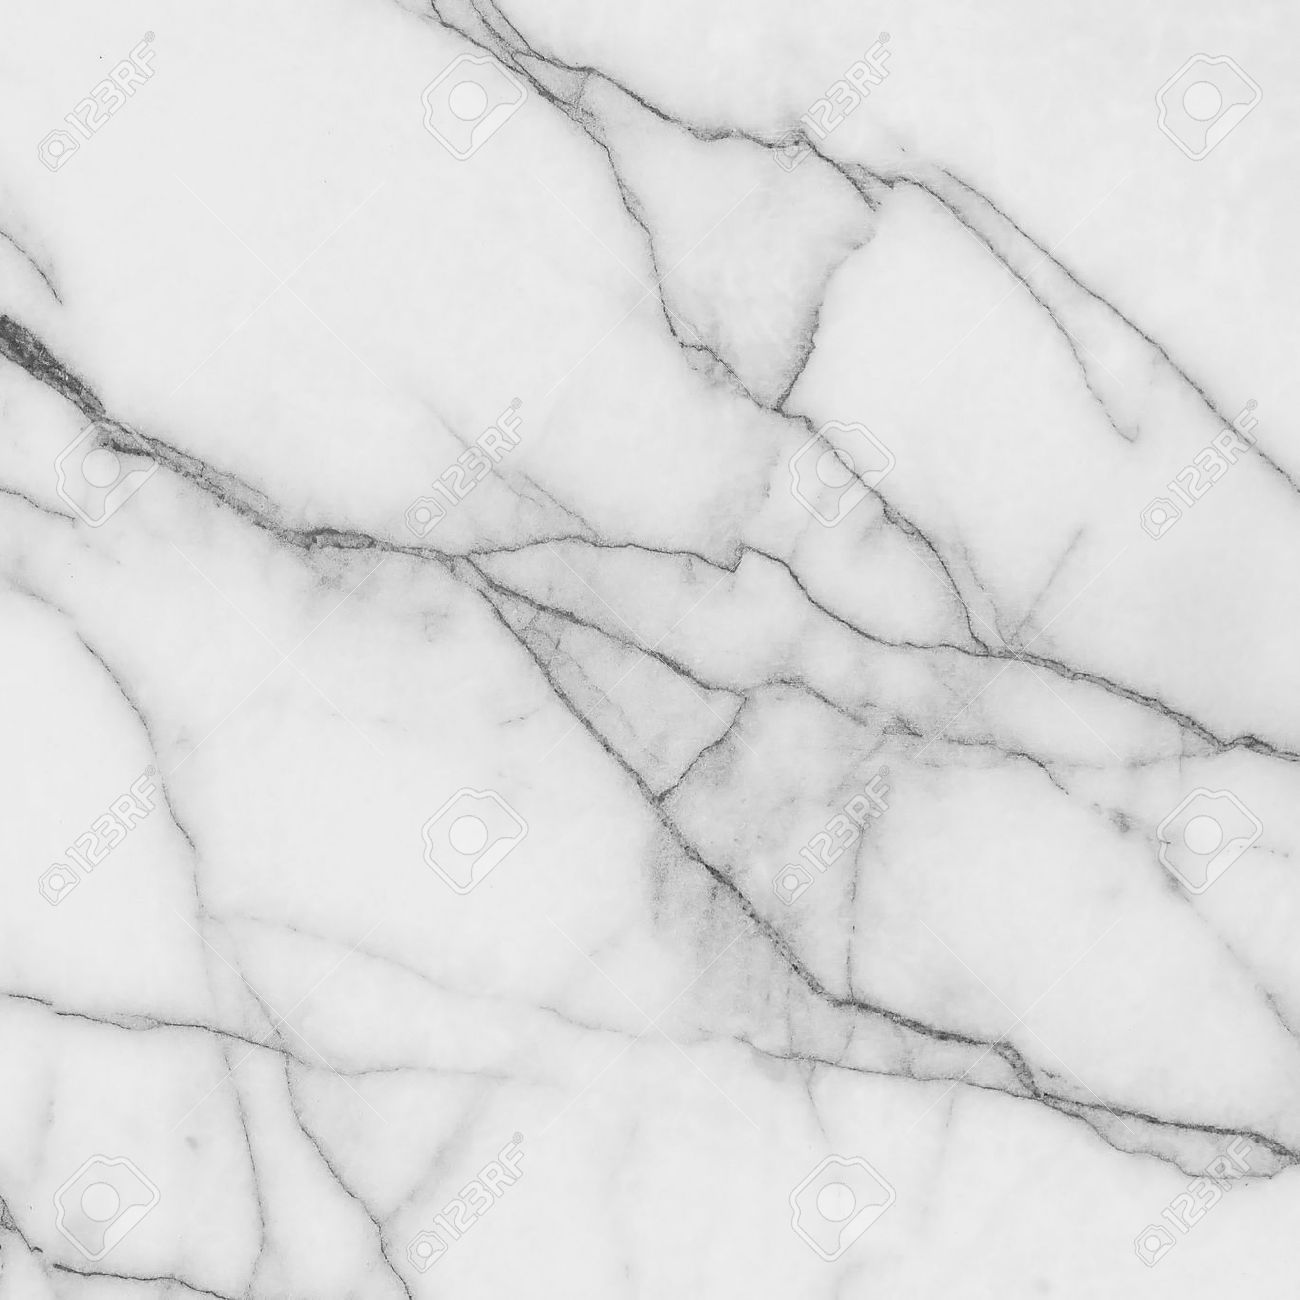 White Marble Images Stock Pictures Royalty Free White Marble Photos And Stock Photography Marble Texture White Marble Faux Rock Walls